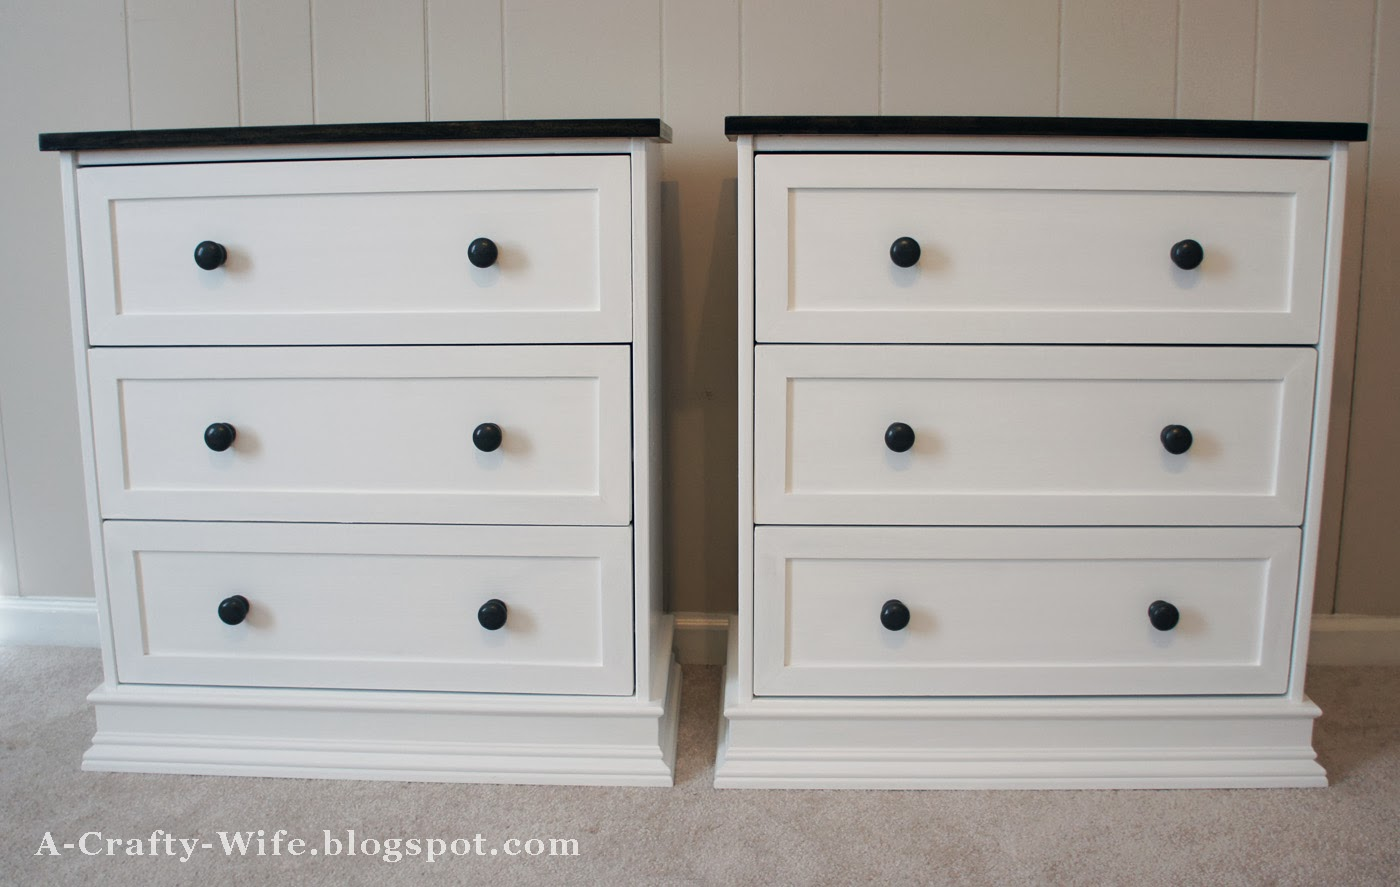 Ikea Rast Hack nightstand Part 1